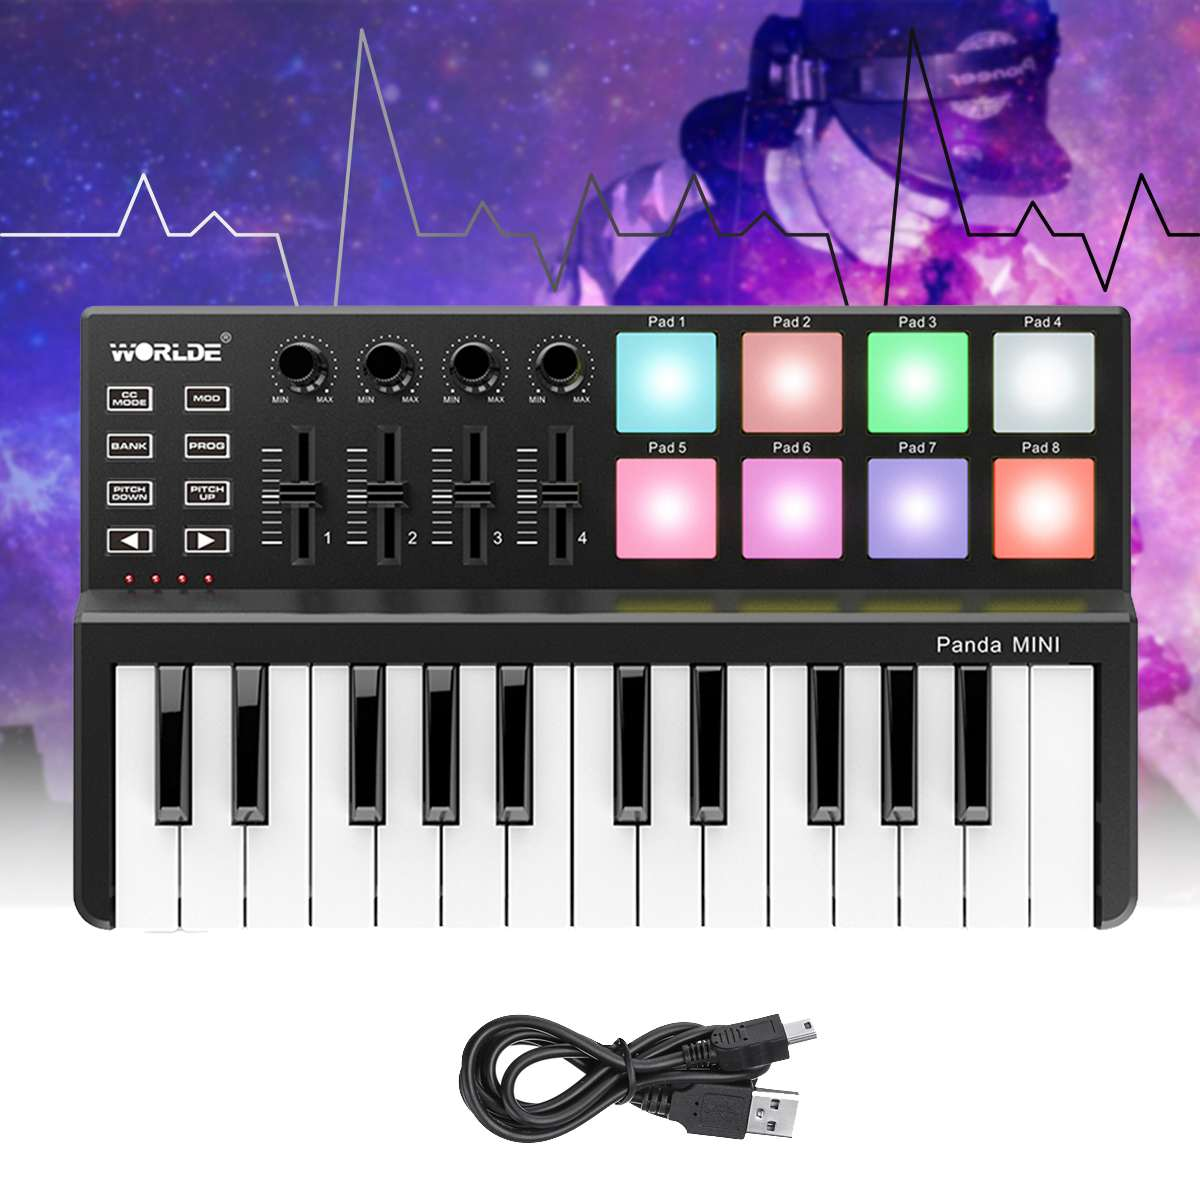 Worlde Panda Portable MINI 25-Key Ultra-Portable USB MIDI Keyboard Controller 8 Colorful Backlit Trigger Pads